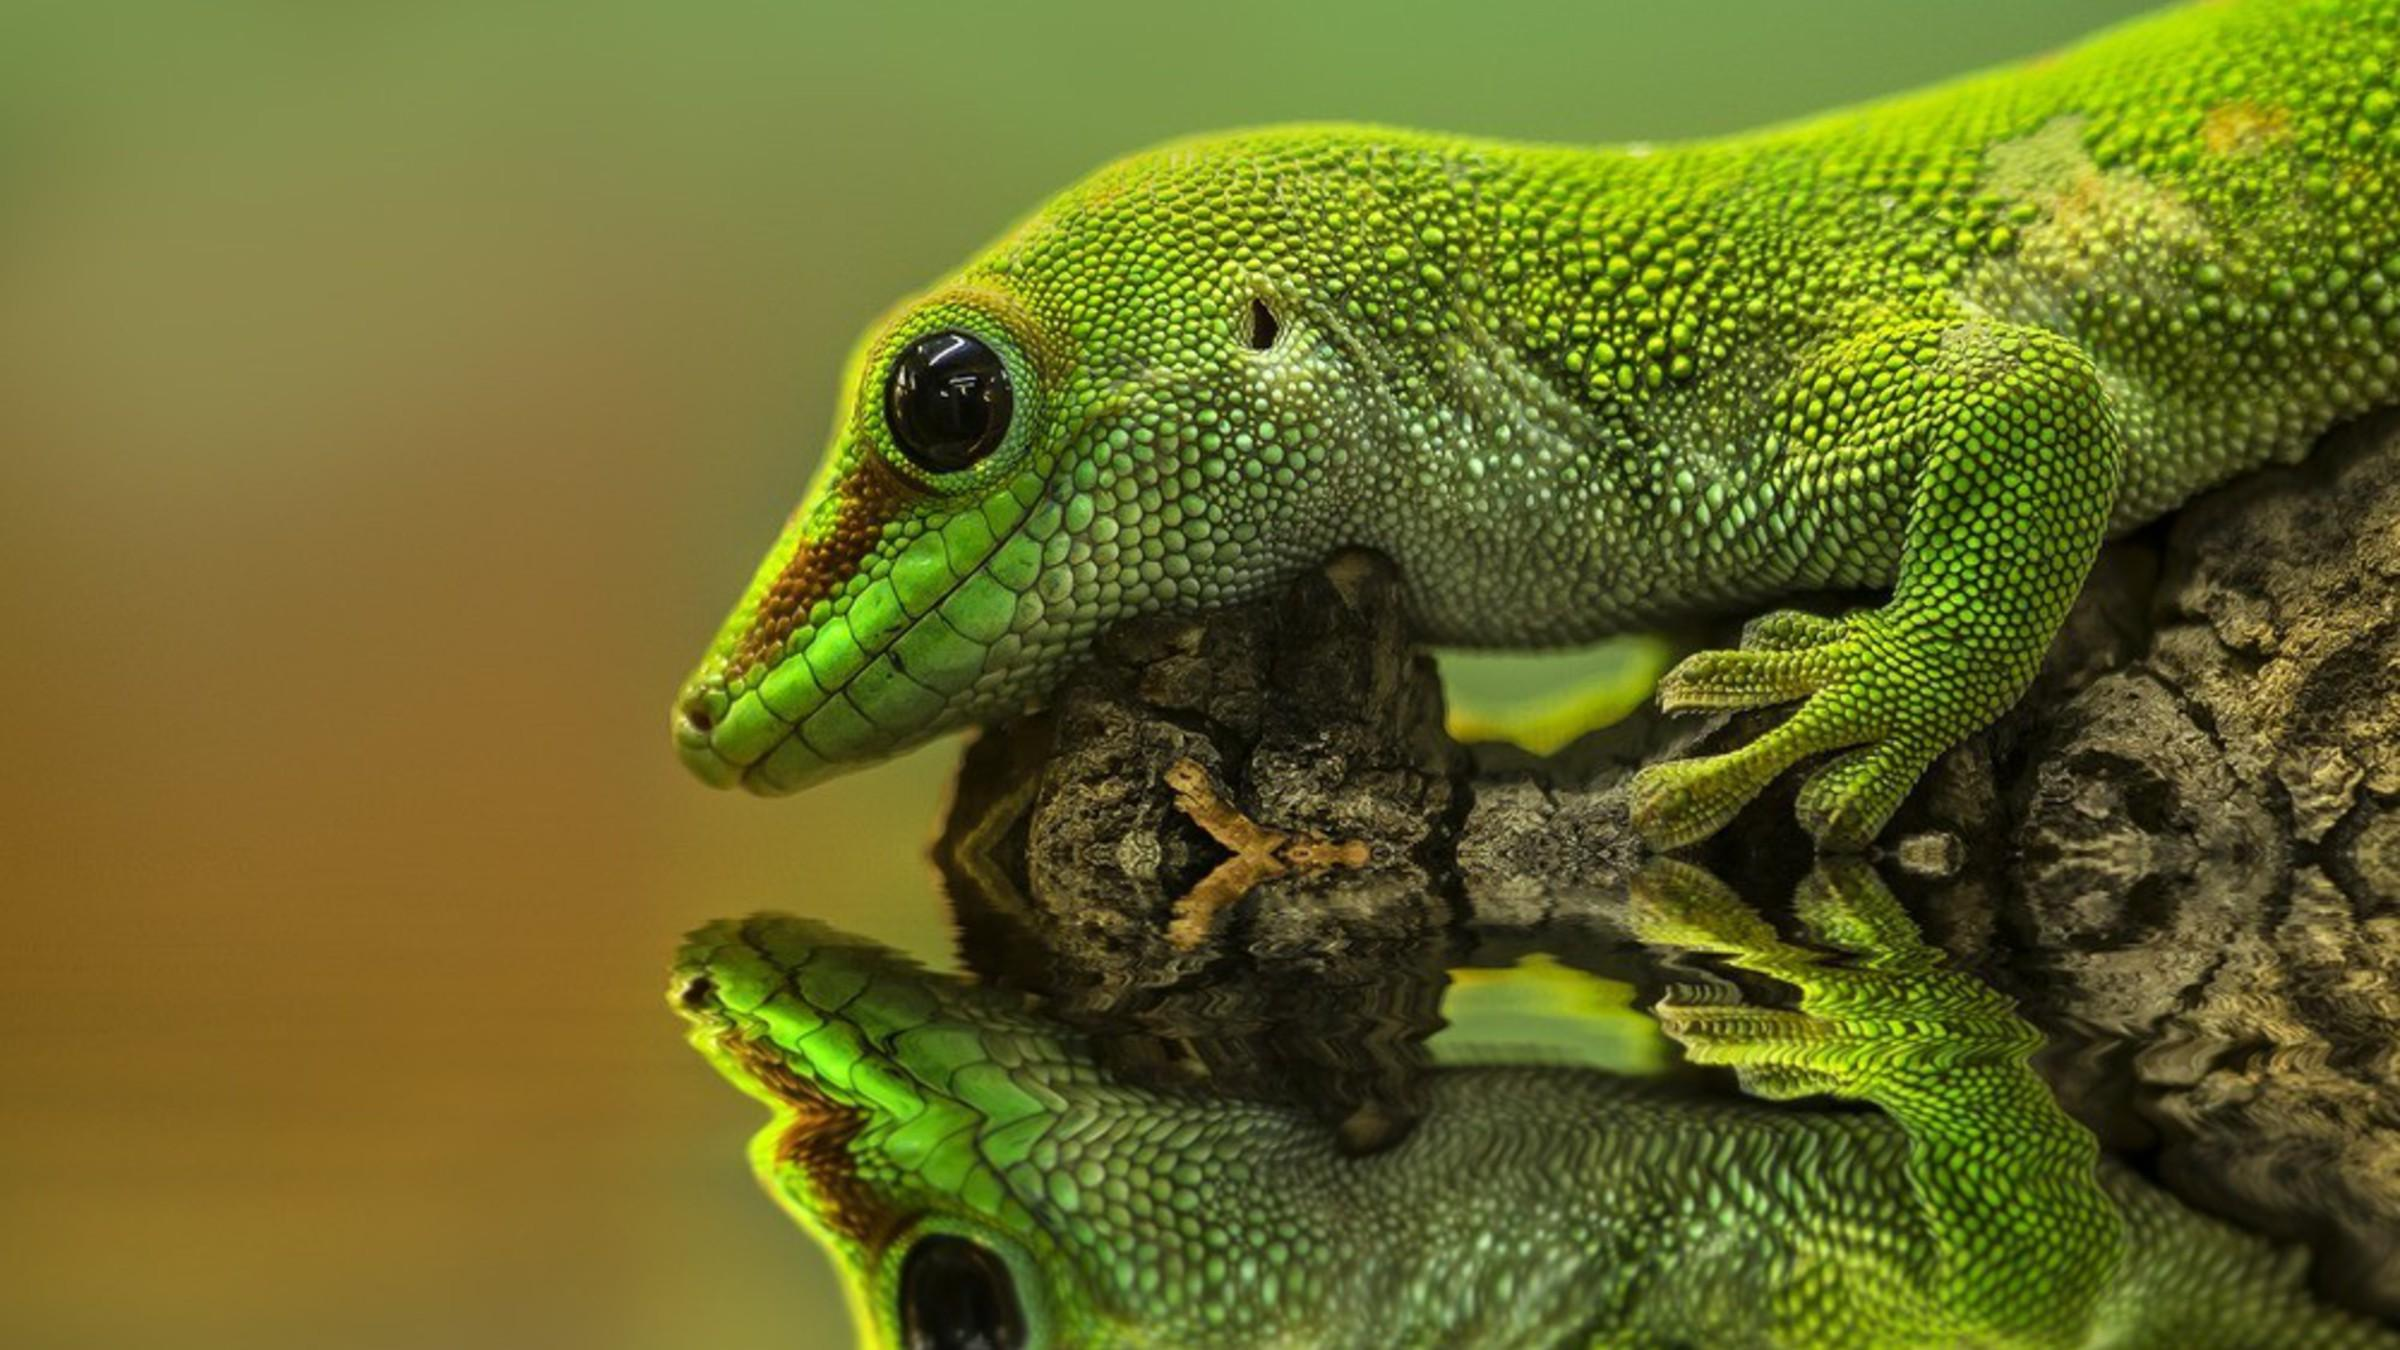 Gecko reptiles reflections wallpapers